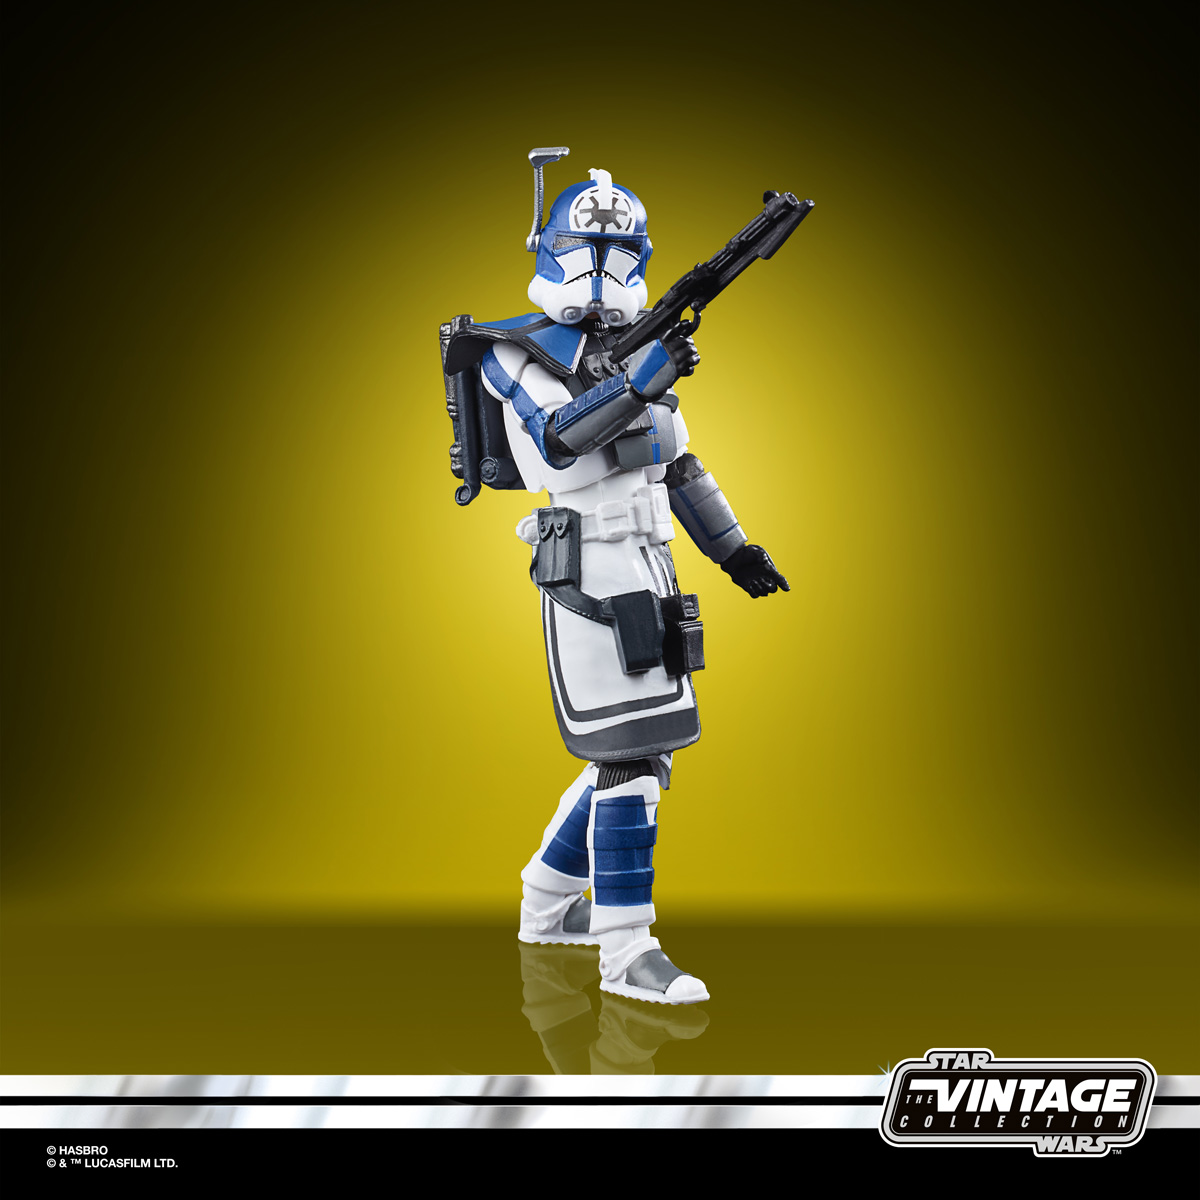 star-wars-the-vintage-collection-star-wars-the-clone-wars-501st-legion-arc-troopers-figure-3-pack-oop-4